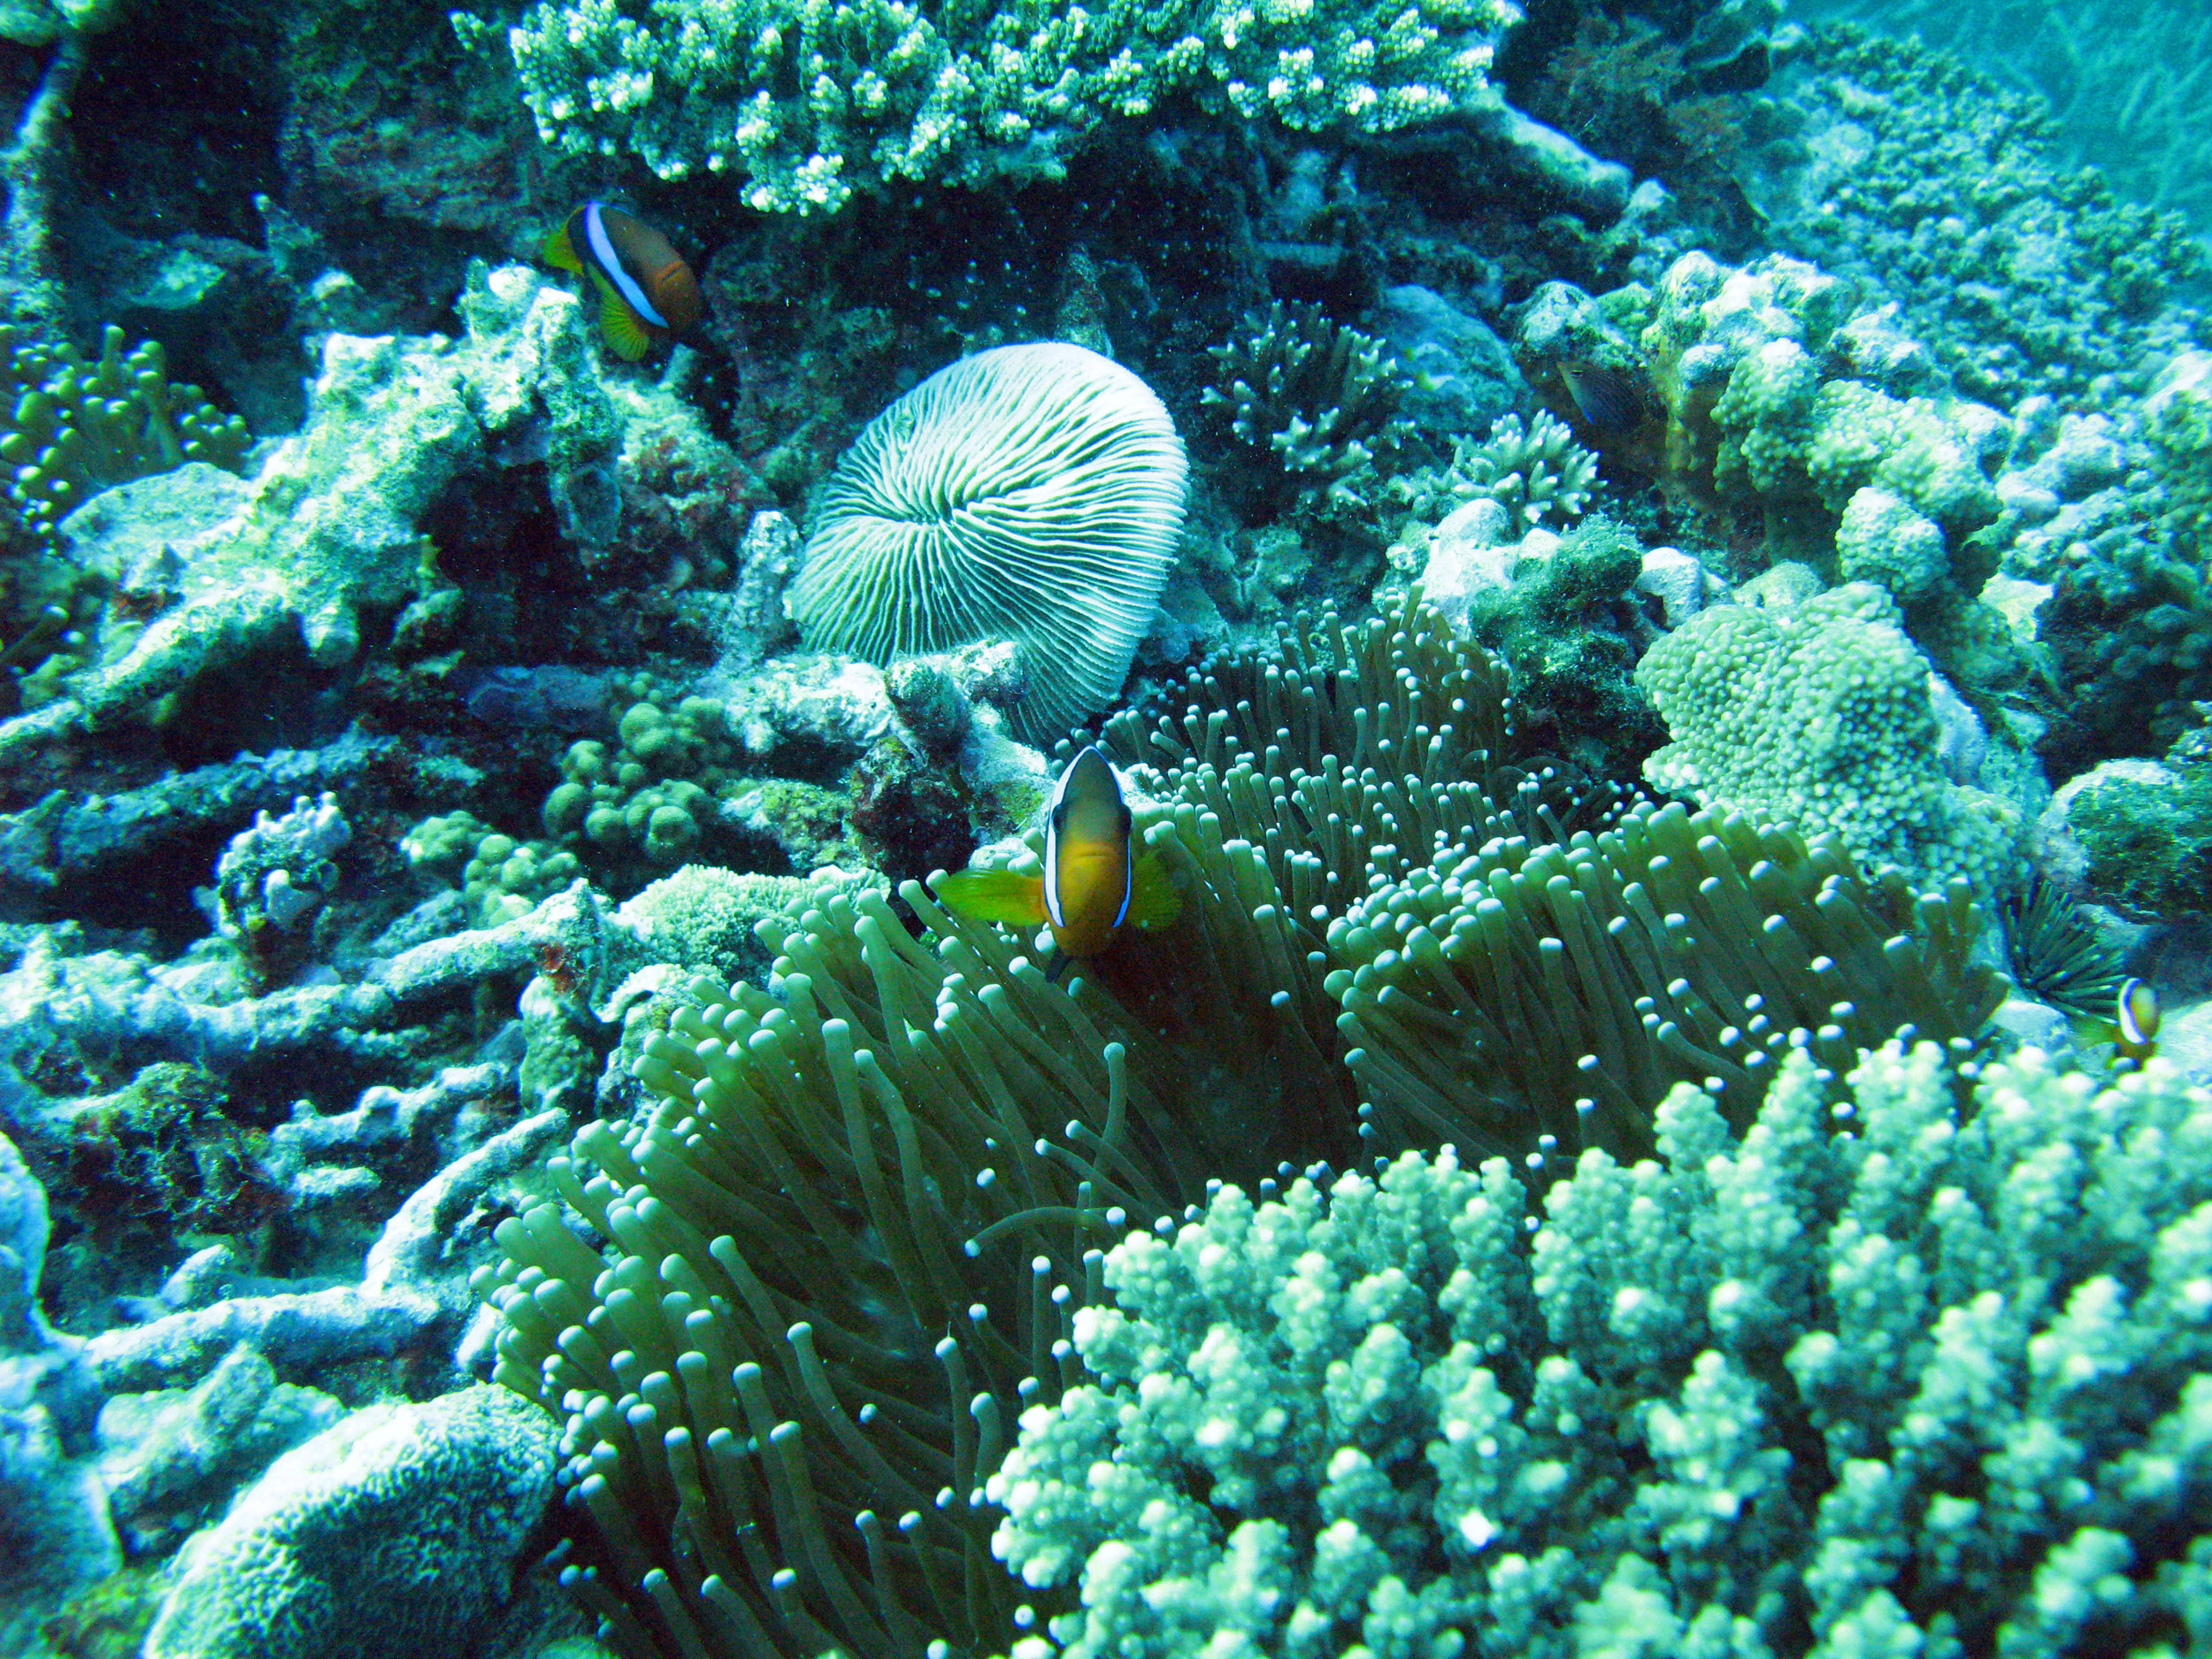 free image of clown fish corals and anemone